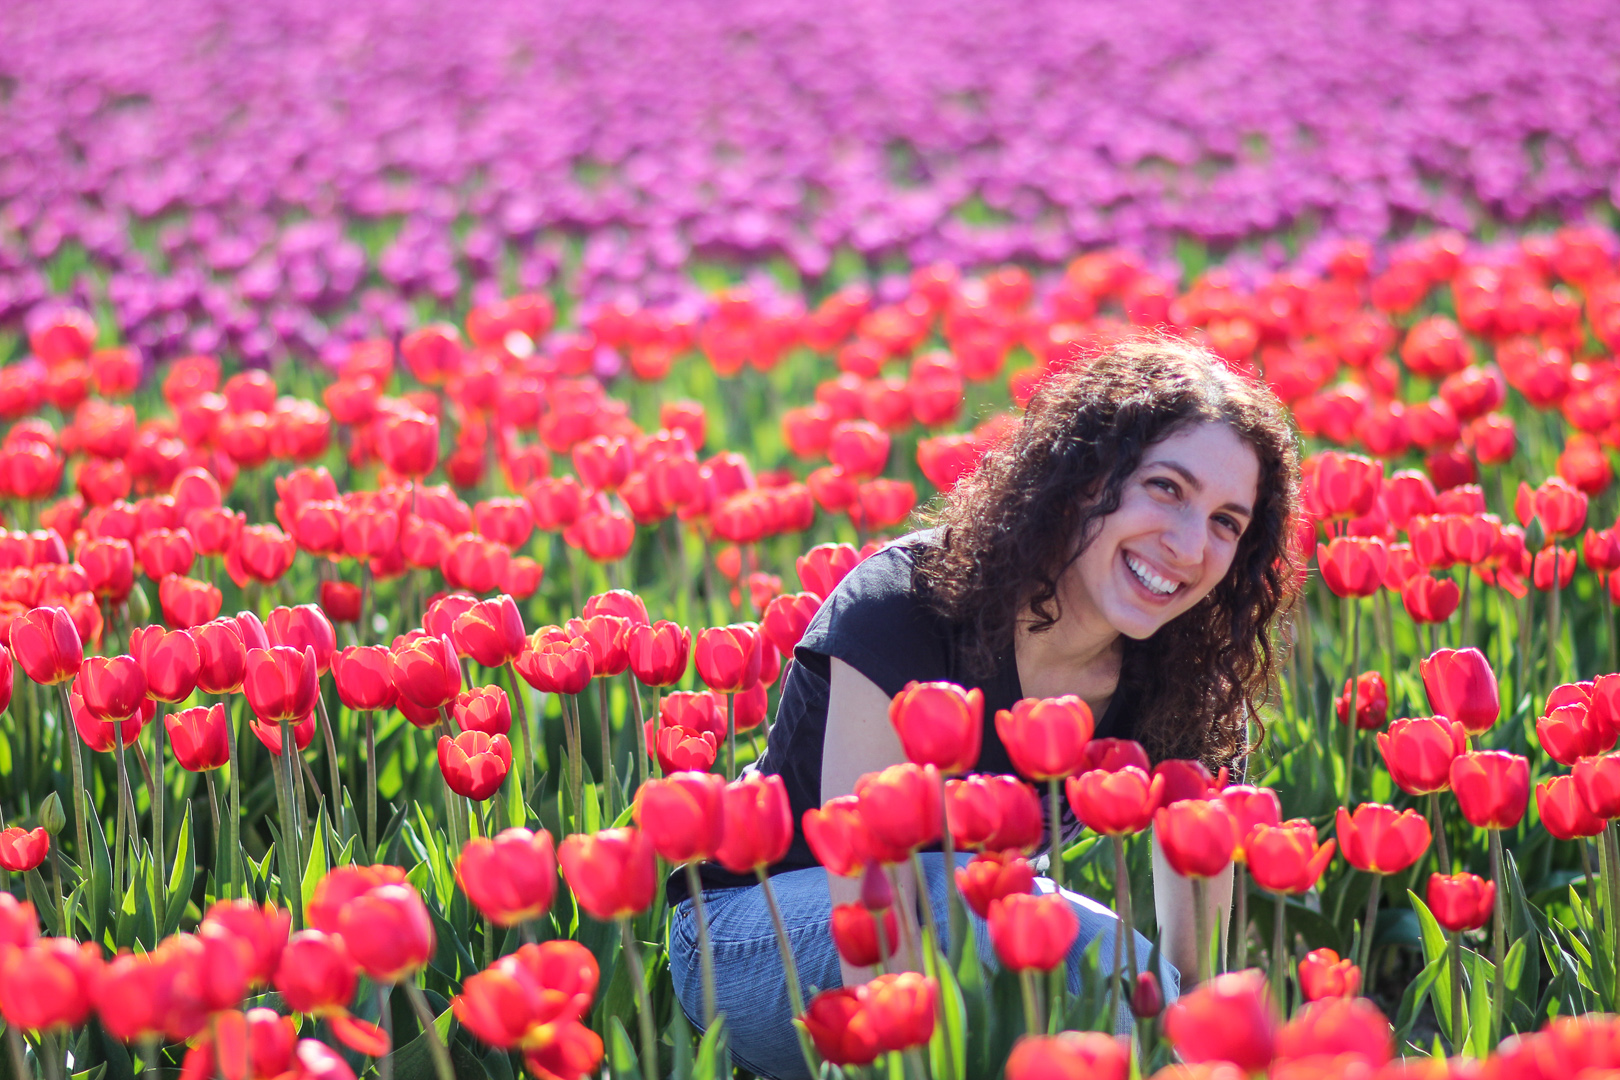 Washington_Tulips_5.jpg